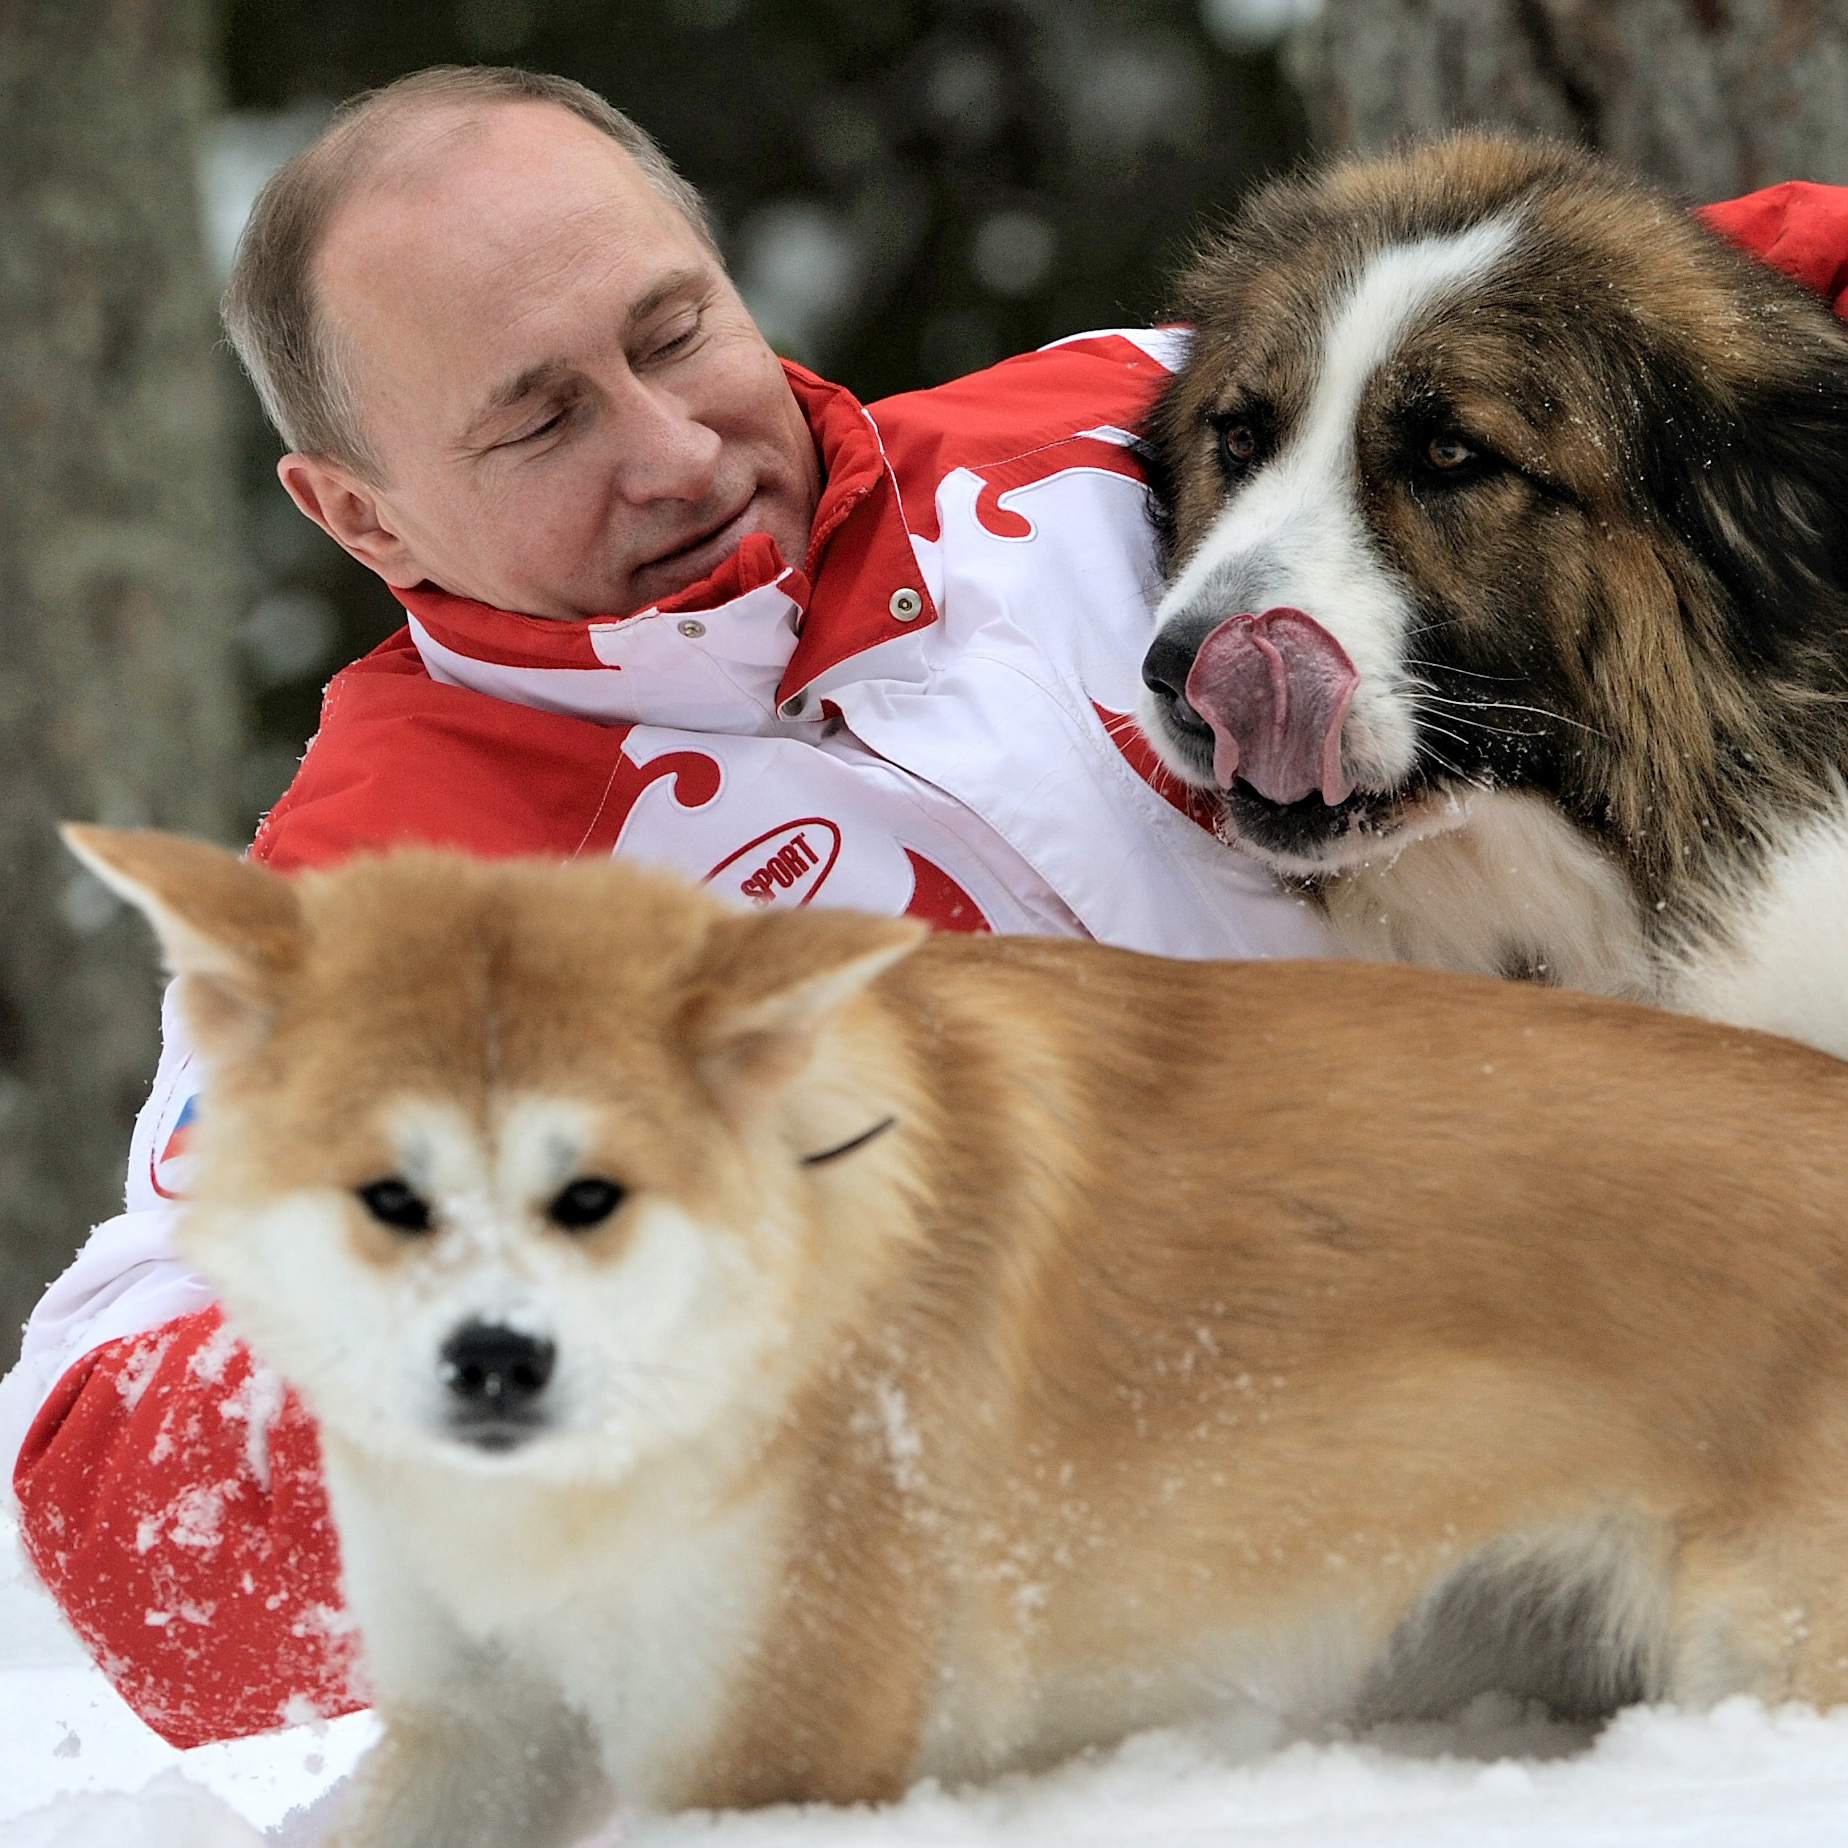 Russian President Vladimir Putin plays with his dogs Buffy (right) and Yume at his residence Novo-Ogariovo, outside Moscow on March 24, 2013. Bulgarian shepherd dog Buffy was presented to Putin by his Bulgarian counterpart Boyko Borisov, while Japanese Prime Minister Yoshihiko Noda offered Putin the puppy Yume as a gift during the G20 in Mexico in June.